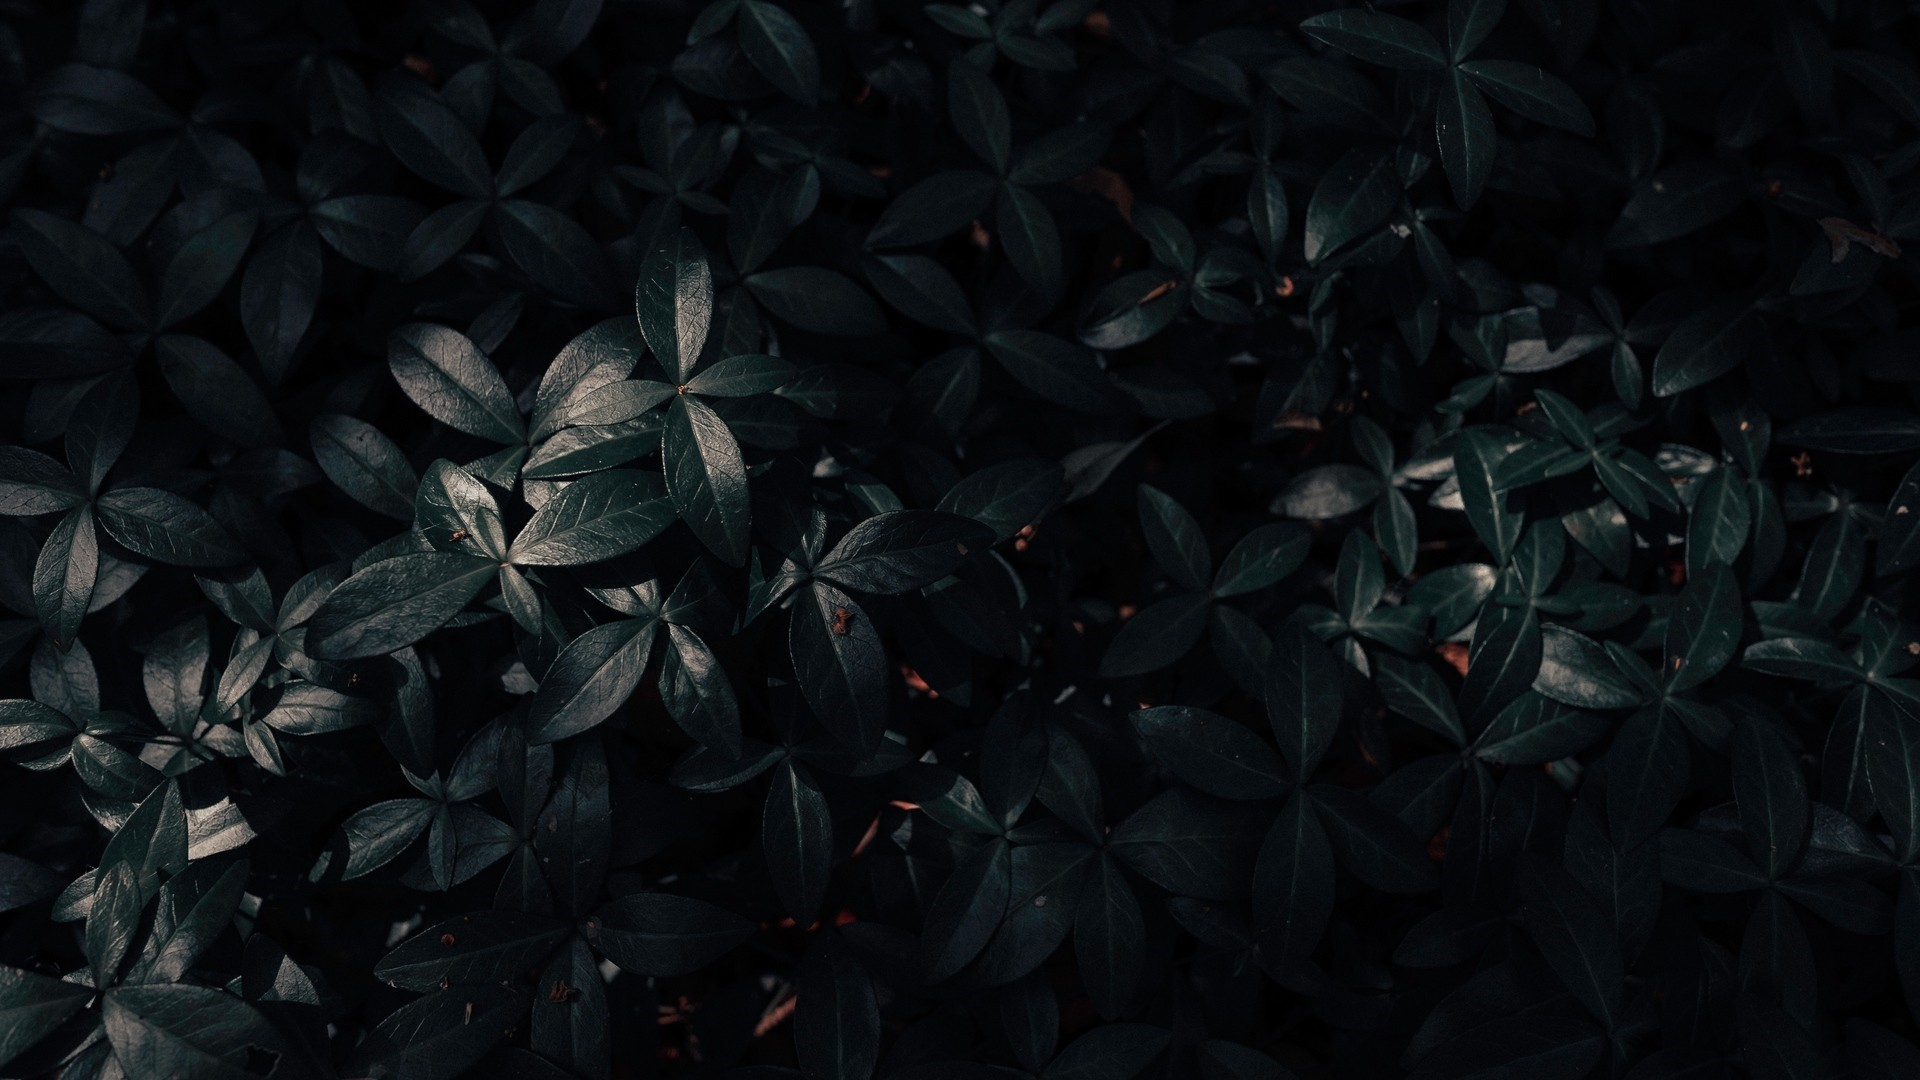 Aesthetic Black Wallpapers 20 Images Wallpaperboat